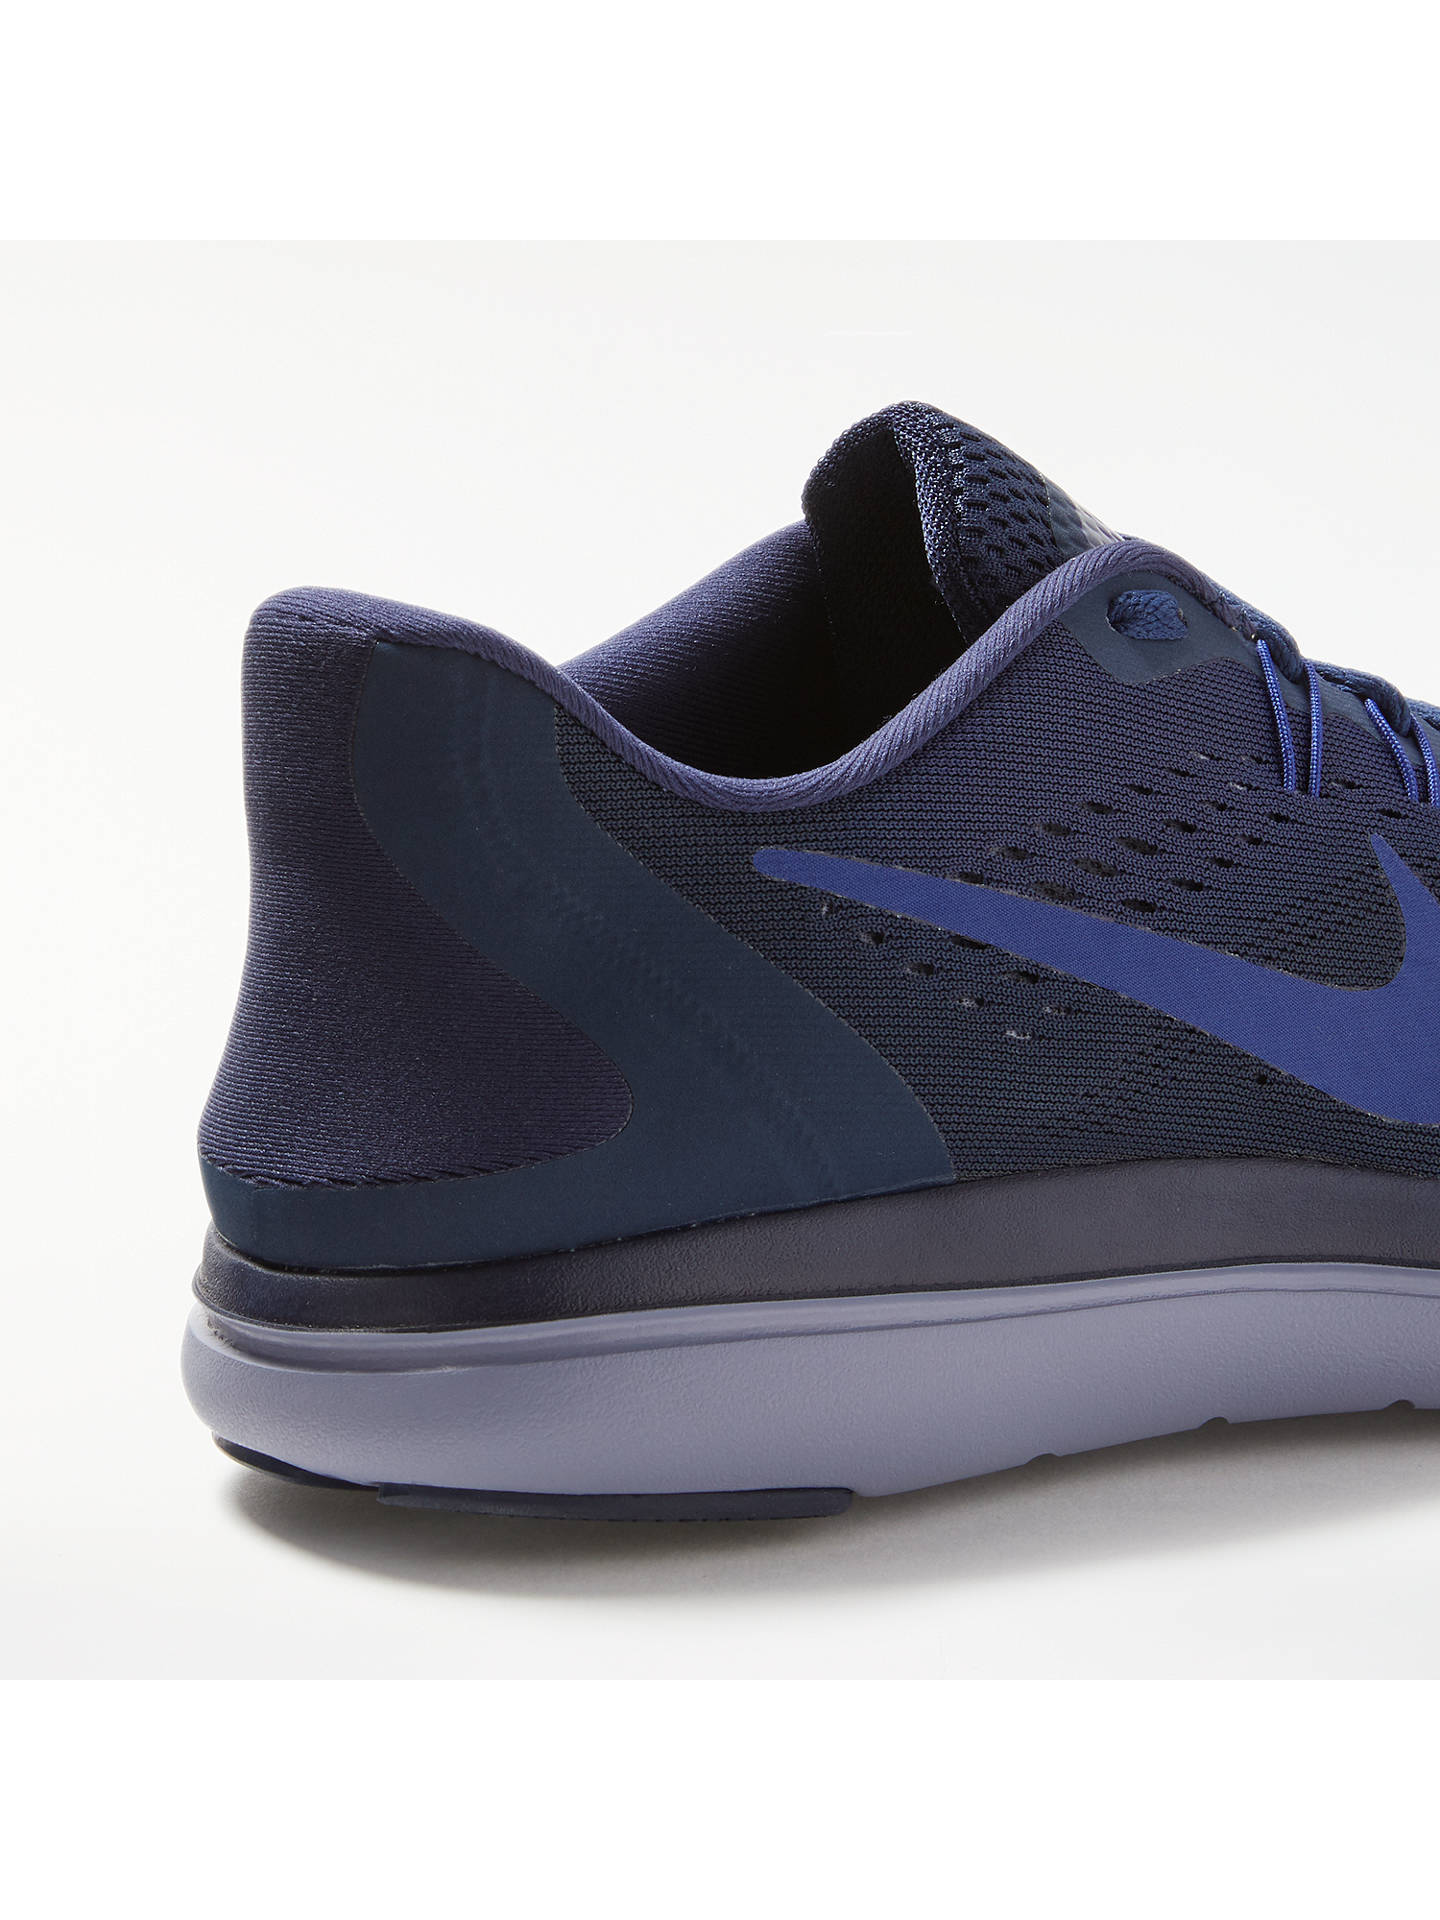 f8cafcc6ce695 Nike Flex 2017 RN Men s Running Shoes at John Lewis   Partners